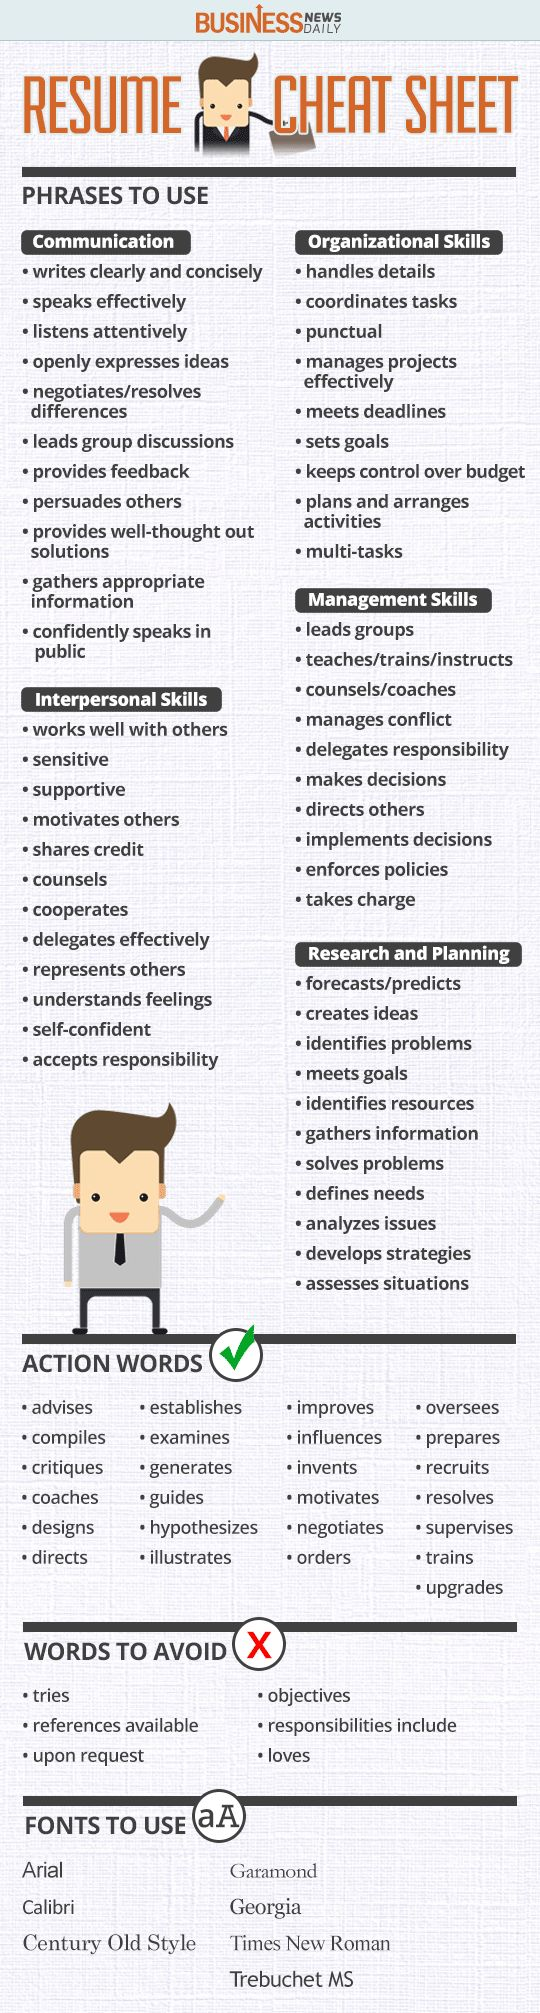 Opposenewapstandardsus  Prepossessing  Ideas About Resume On Pinterest  Cv Format Resume  With Great Resume Cheat Sheet Infographic Andrews Almost Done With A Complete Unit On Employment Which With Comely College Grad Resume Examples Also Accountant Assistant Resume In Addition Resume Writter And How To Format Education On Resume As Well As Ui Ux Resume Additionally Sample Preschool Teacher Resume From Pinterestcom With Opposenewapstandardsus  Great  Ideas About Resume On Pinterest  Cv Format Resume  With Comely Resume Cheat Sheet Infographic Andrews Almost Done With A Complete Unit On Employment Which And Prepossessing College Grad Resume Examples Also Accountant Assistant Resume In Addition Resume Writter From Pinterestcom